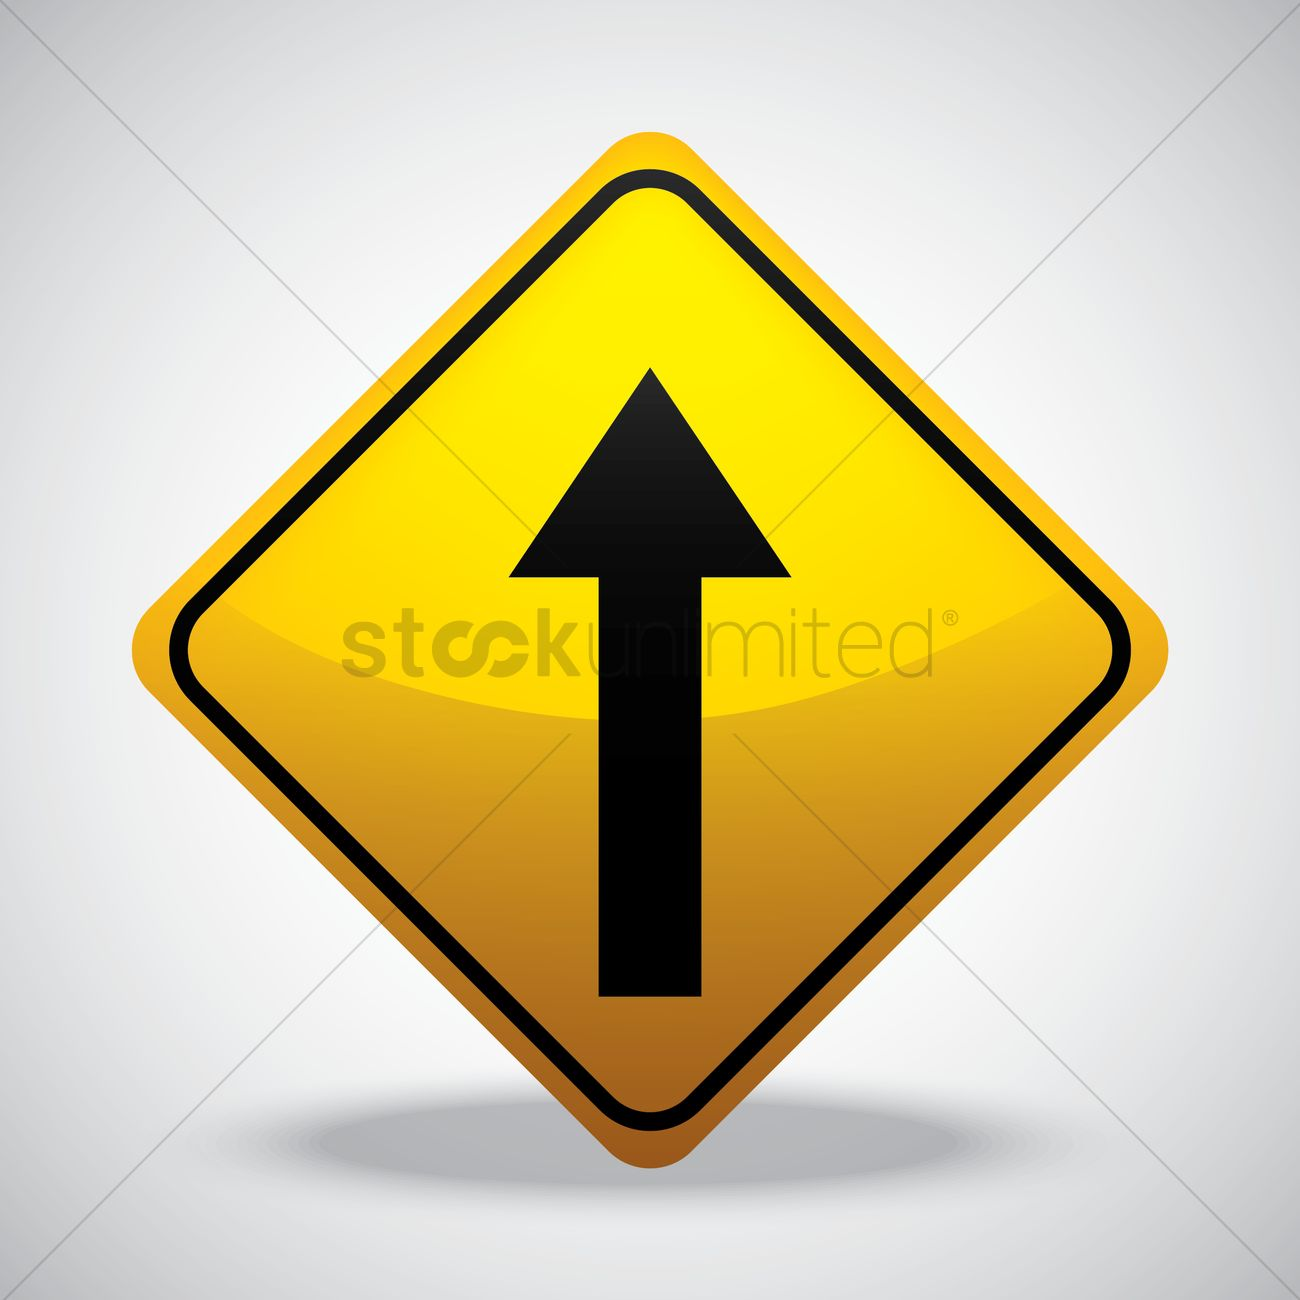 as well Go Straight Road Sign 1569766 in addition Stock Illustration Fruit Stand Selling Apples Pears Wooden Boxes Vector Illustration Image50248975 as well Funny Animal Pictures Background furthermore Ball Finial Wall Mounted Banner Bracket Pair. on outdoor roadside signs